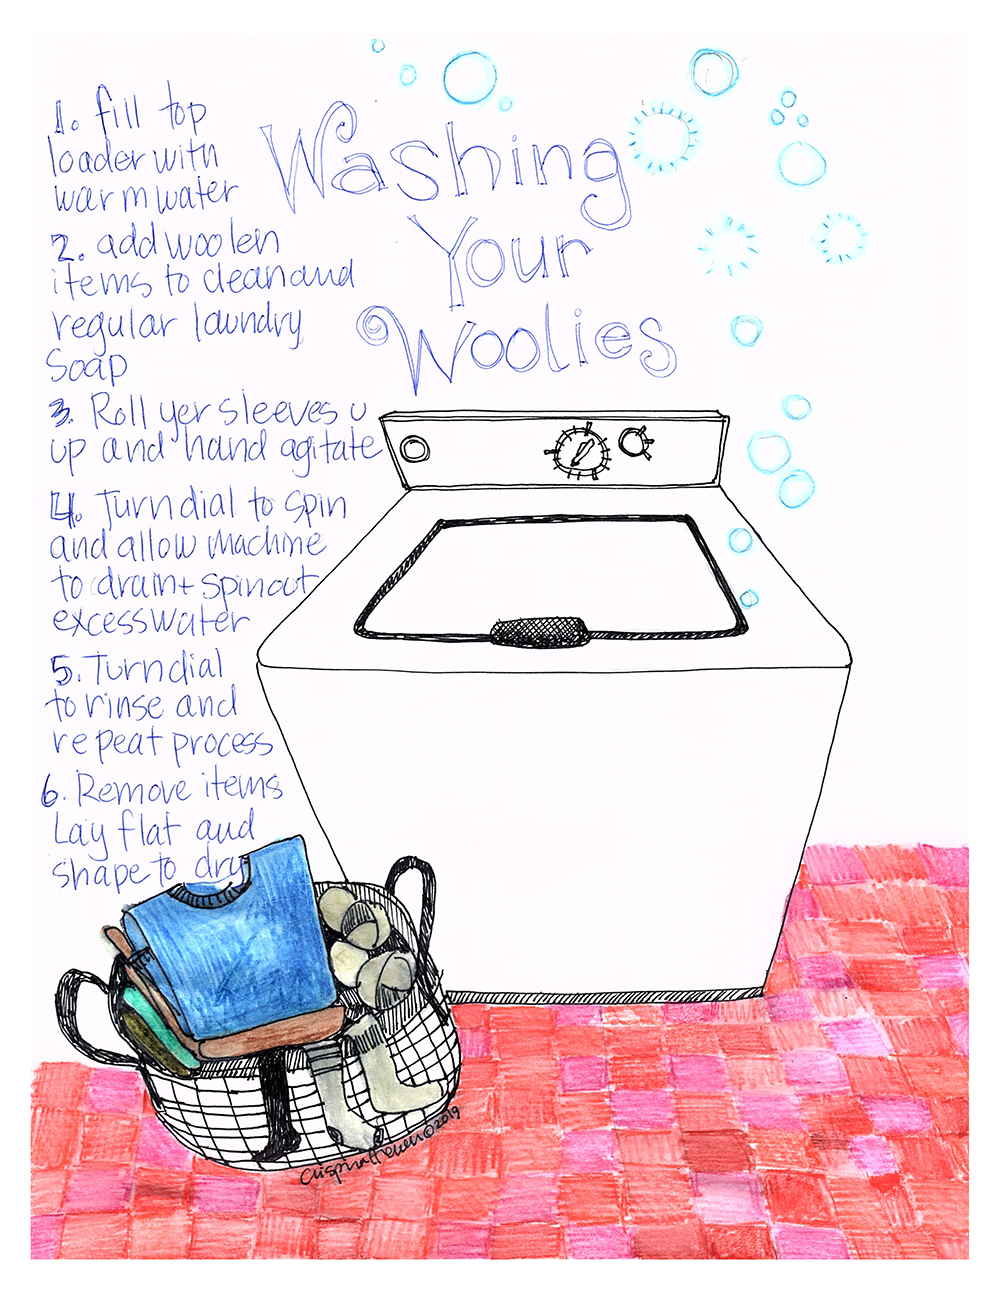 02.02.19 Washing Woolies.jpg